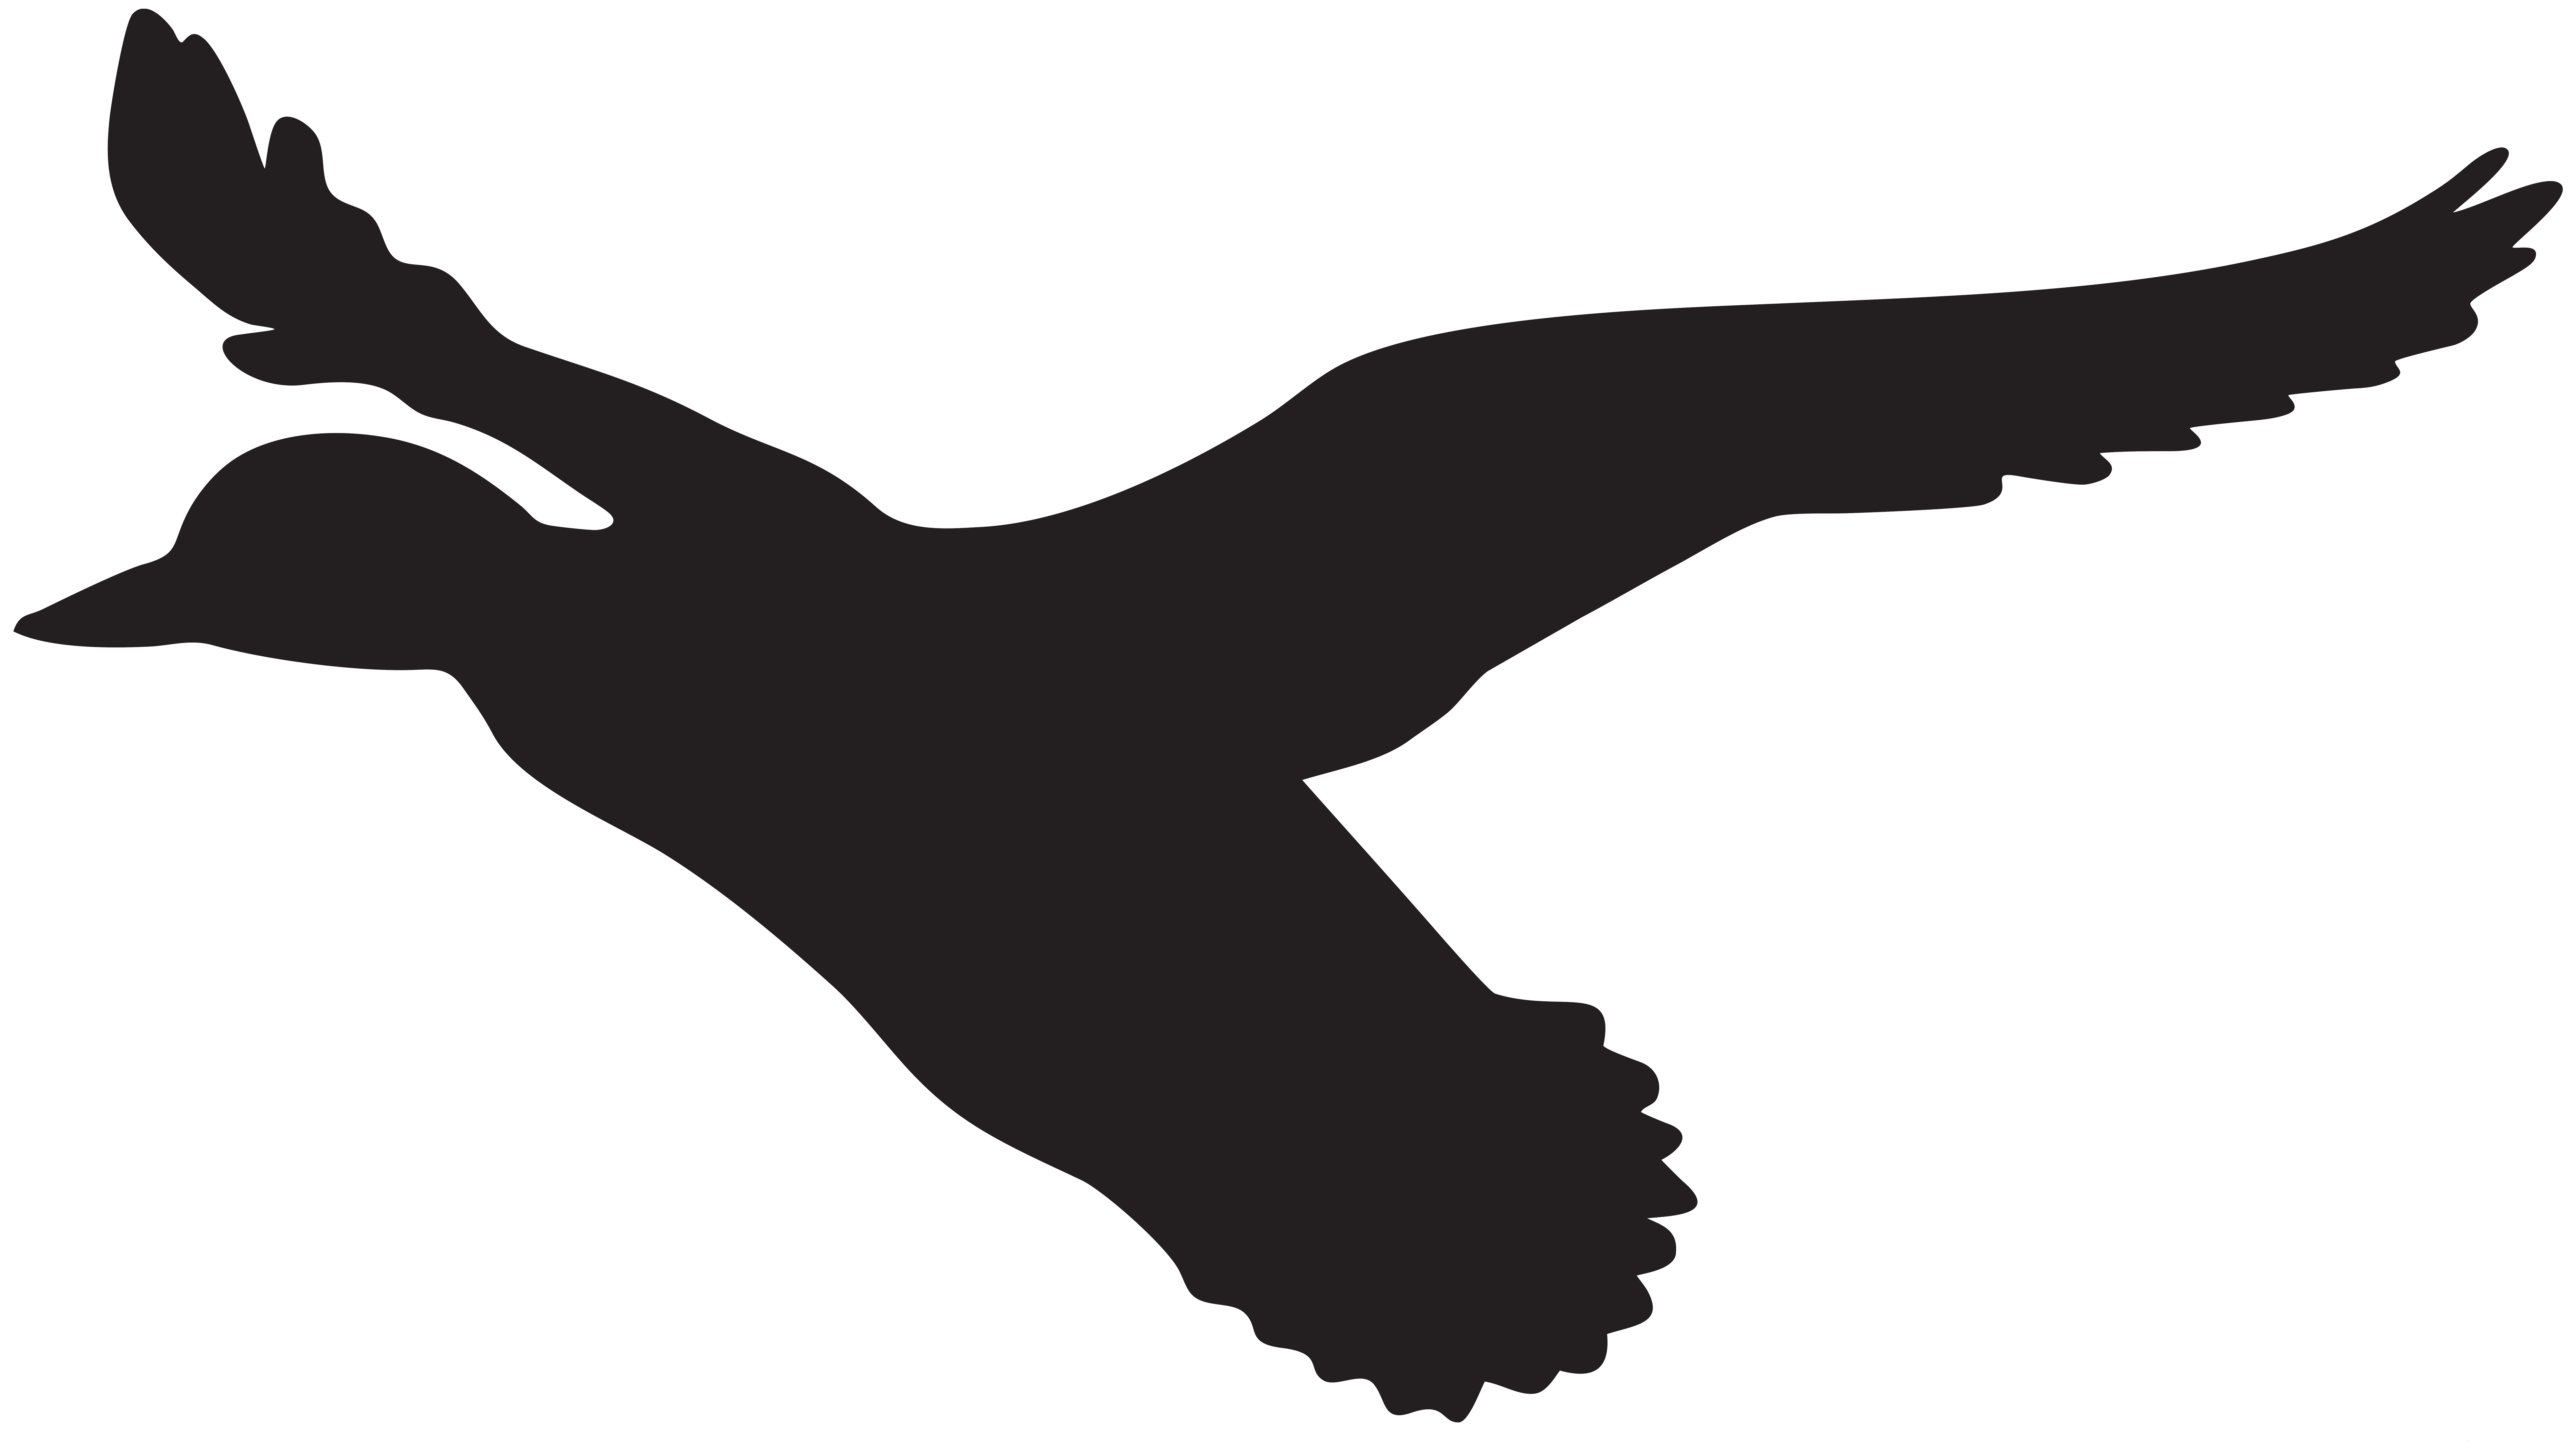 Flying Duck Silhouette PNG Clip Art Image.